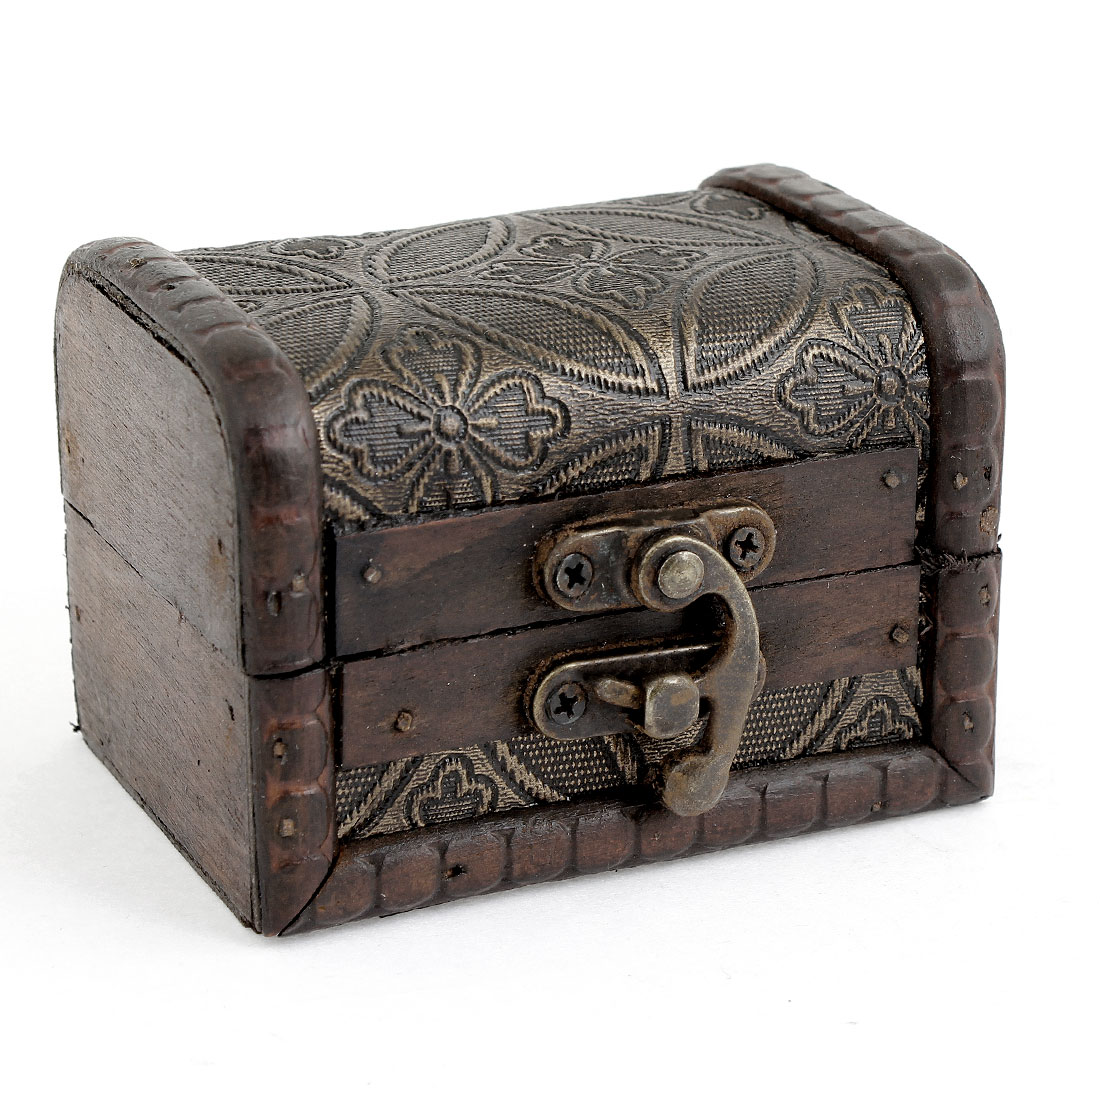 Symmetric Floral Print Wooden Metal Buckle Jewelry Storage Case Box